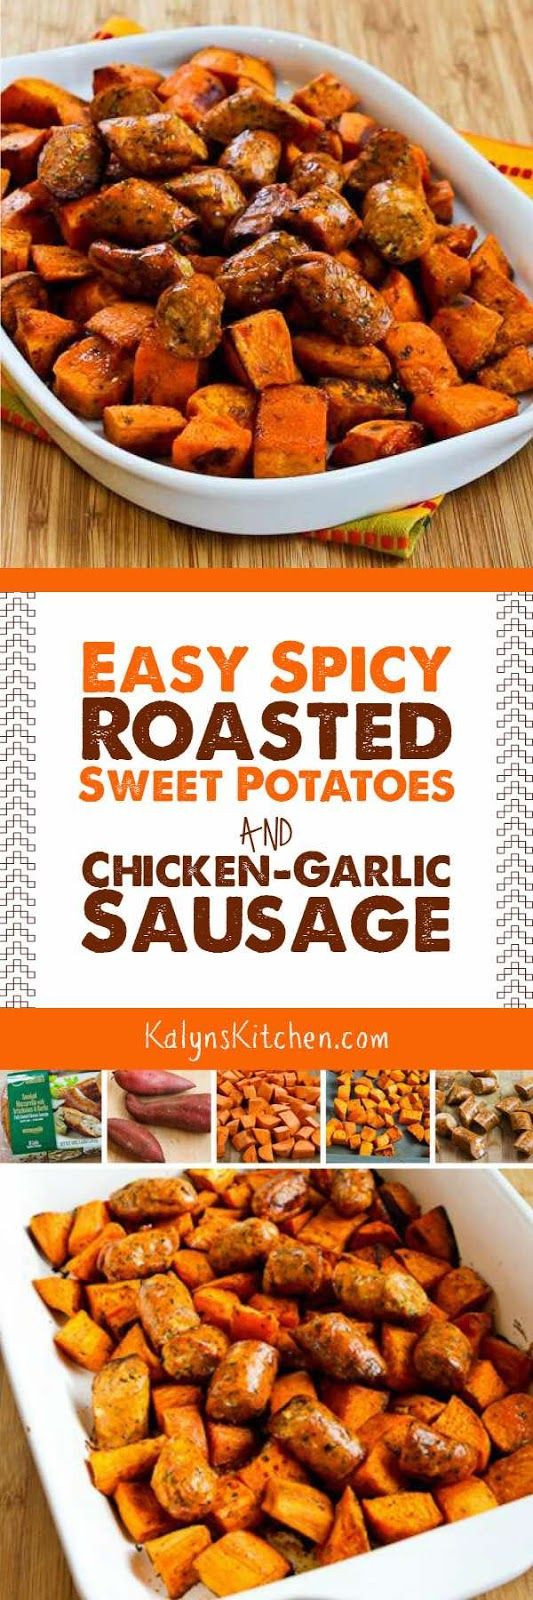 Easy Spicy Roasted Sweet Potatoes and Chicken-Garlic Sausage